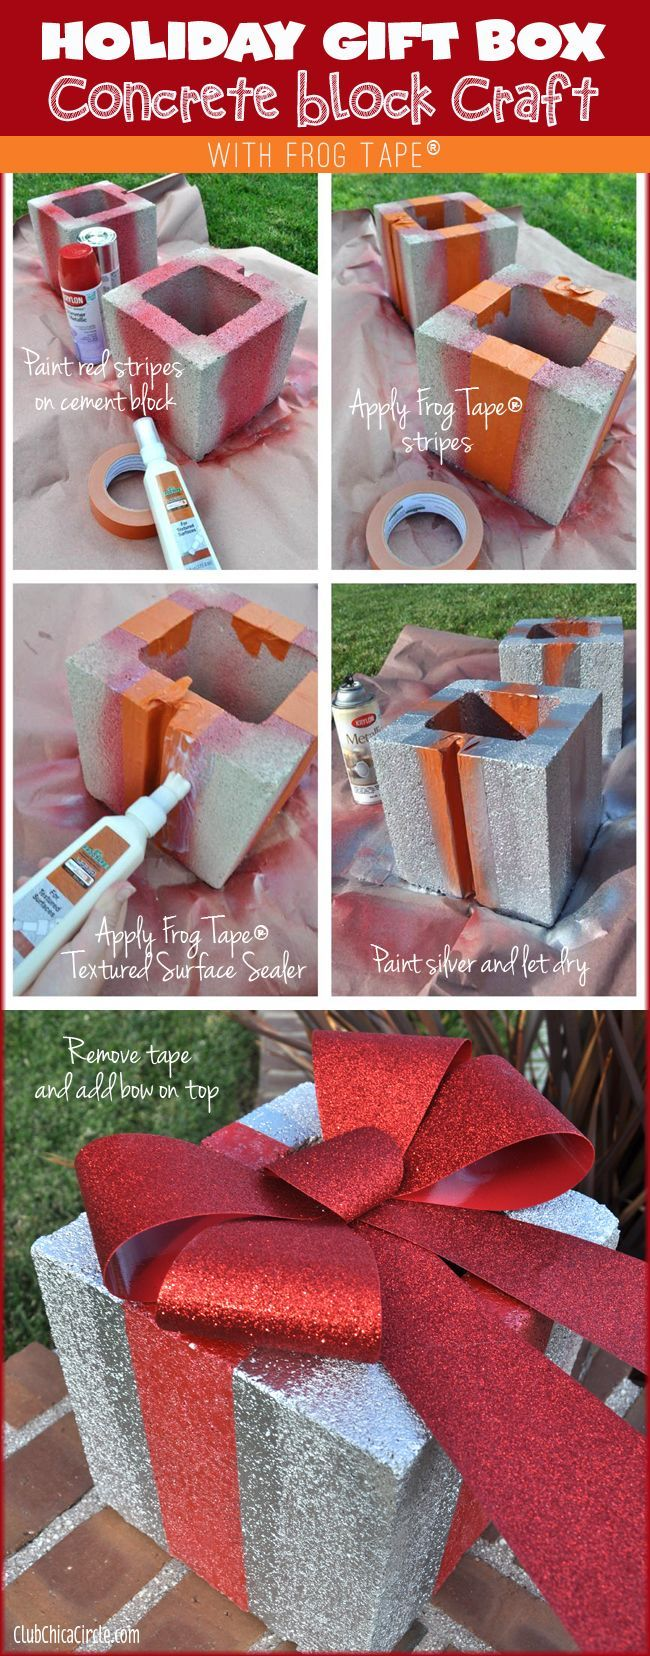 Cement-Brick-Holiday-Gift-Box-Tutorial-with-Frog-Tape®.jpg 650×1,656 pixeles